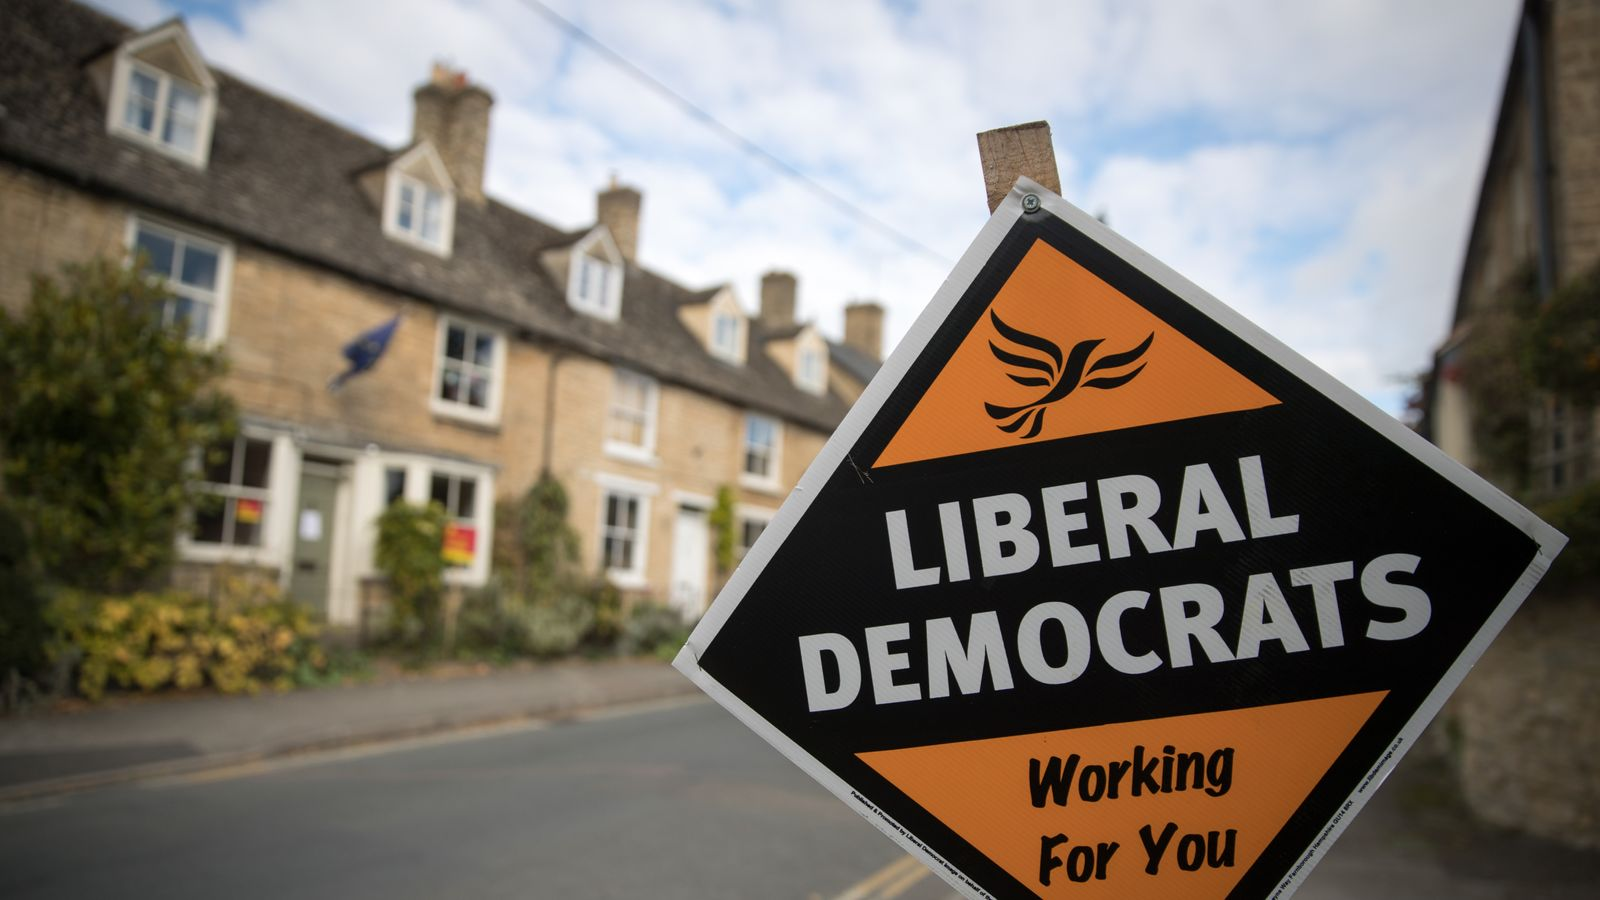 A Lib Dem sign in Witney